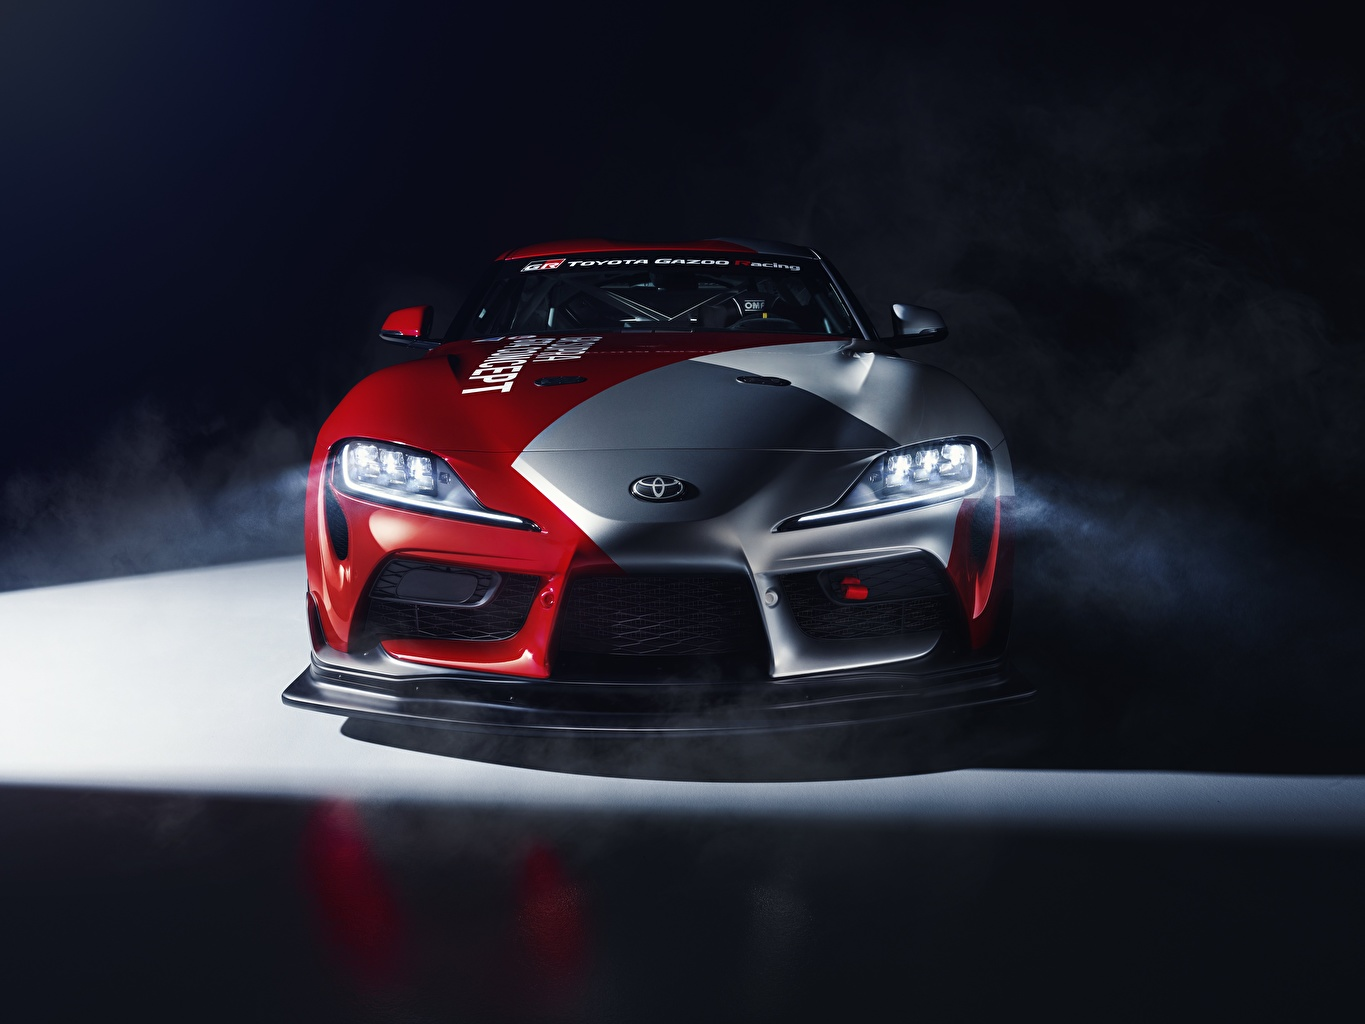 Image Toyota Tuning GT4 GR Supra Front automobile auto Cars